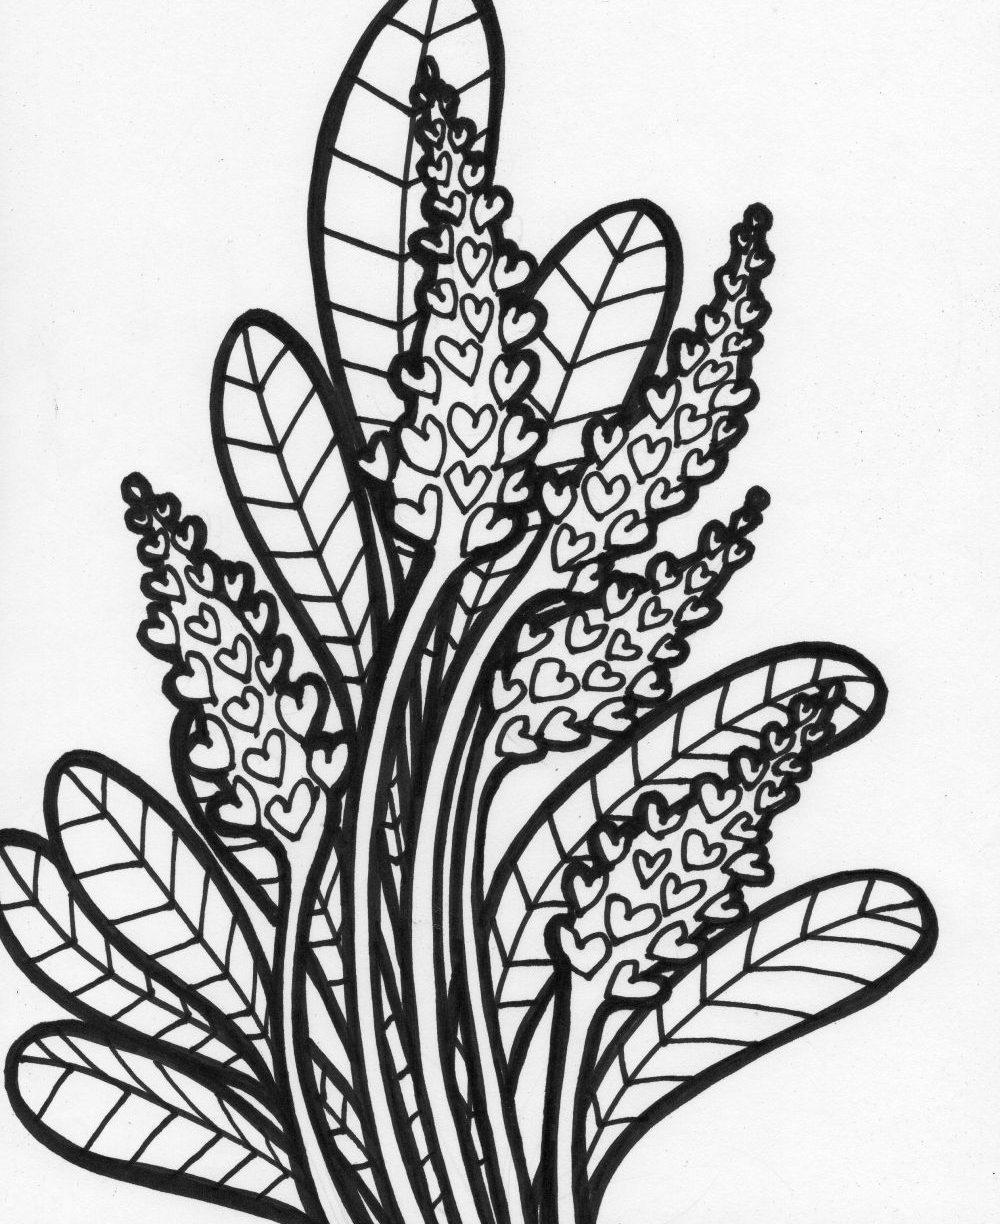 rainforest tree coloring page rain forest coloring pages coloring home rainforest tree page coloring